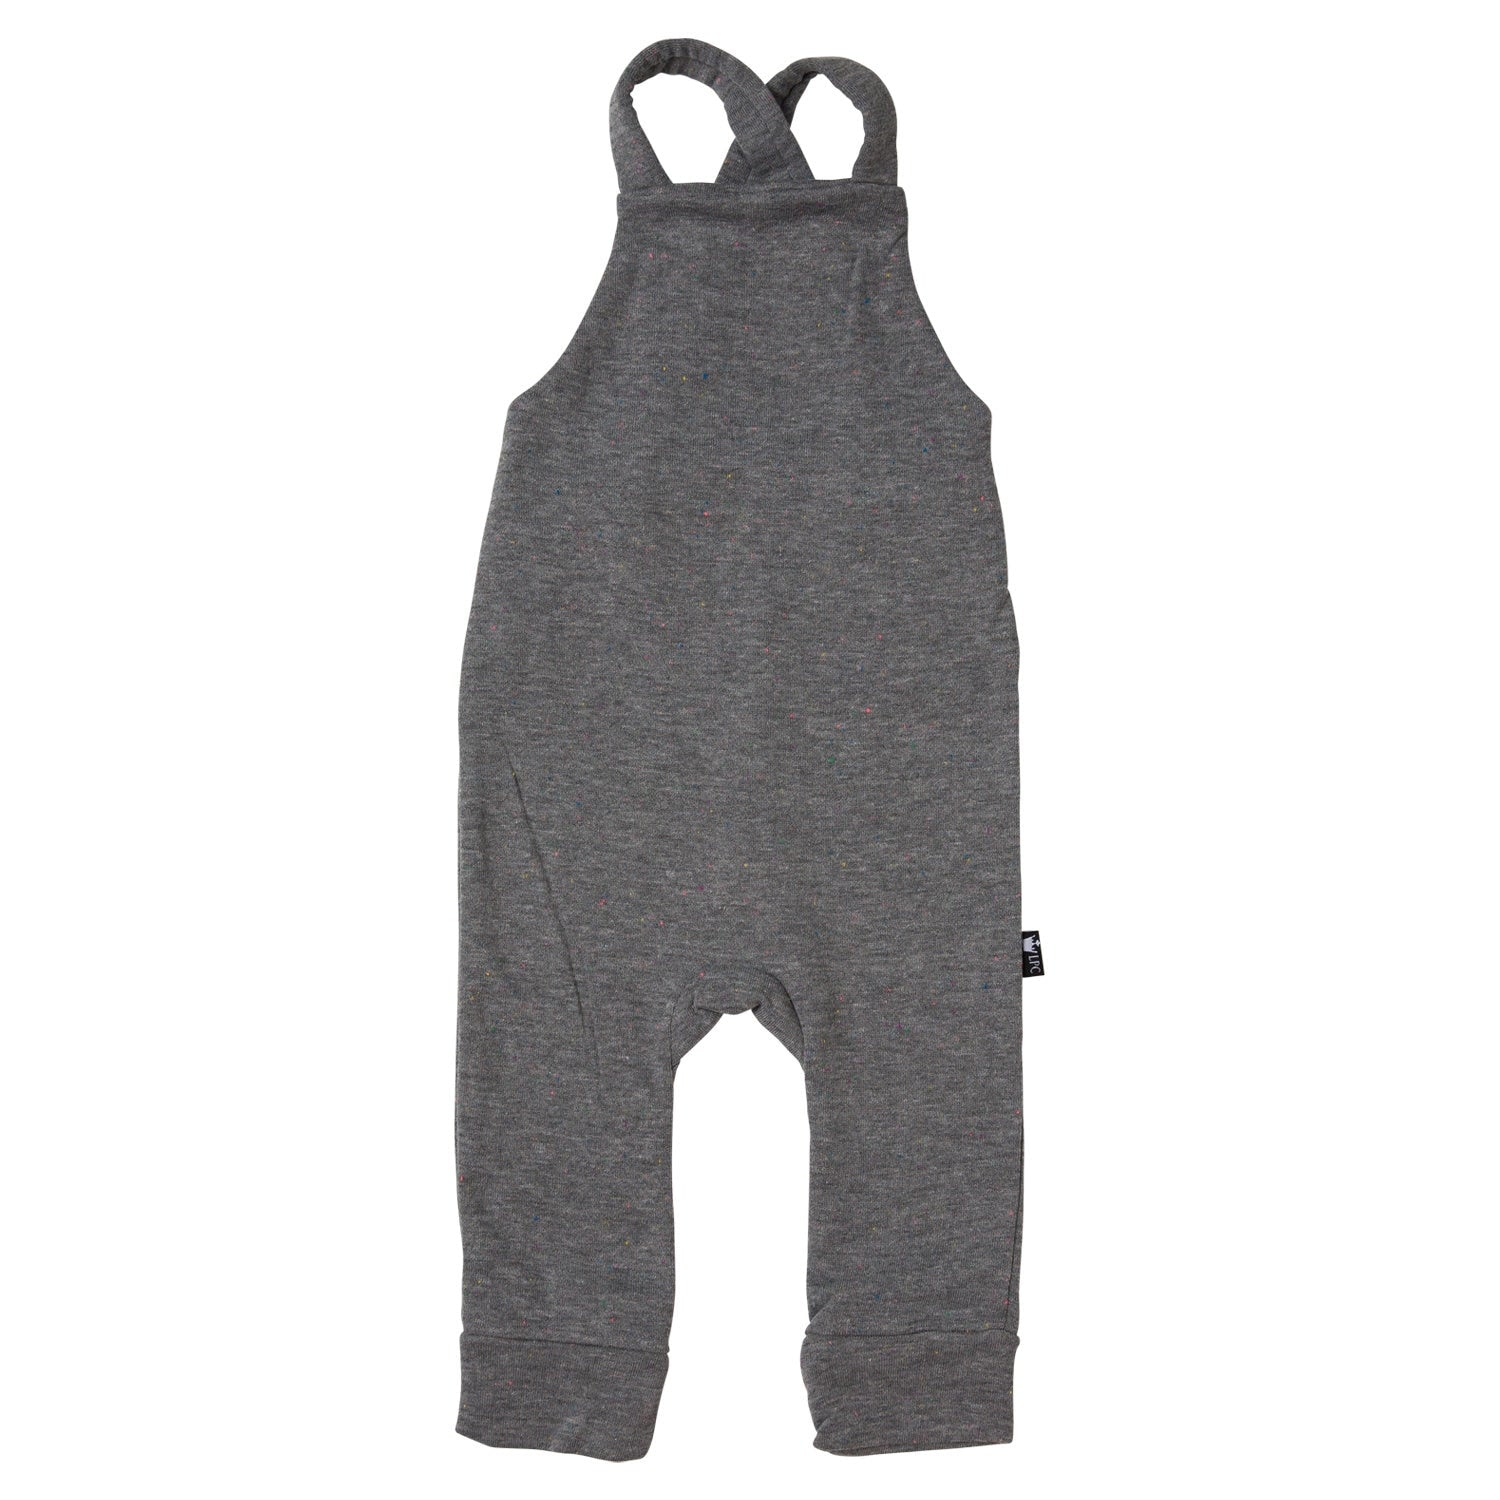 ftor-chr-charcoal-french-terry-overall-romper-front-product.jpg